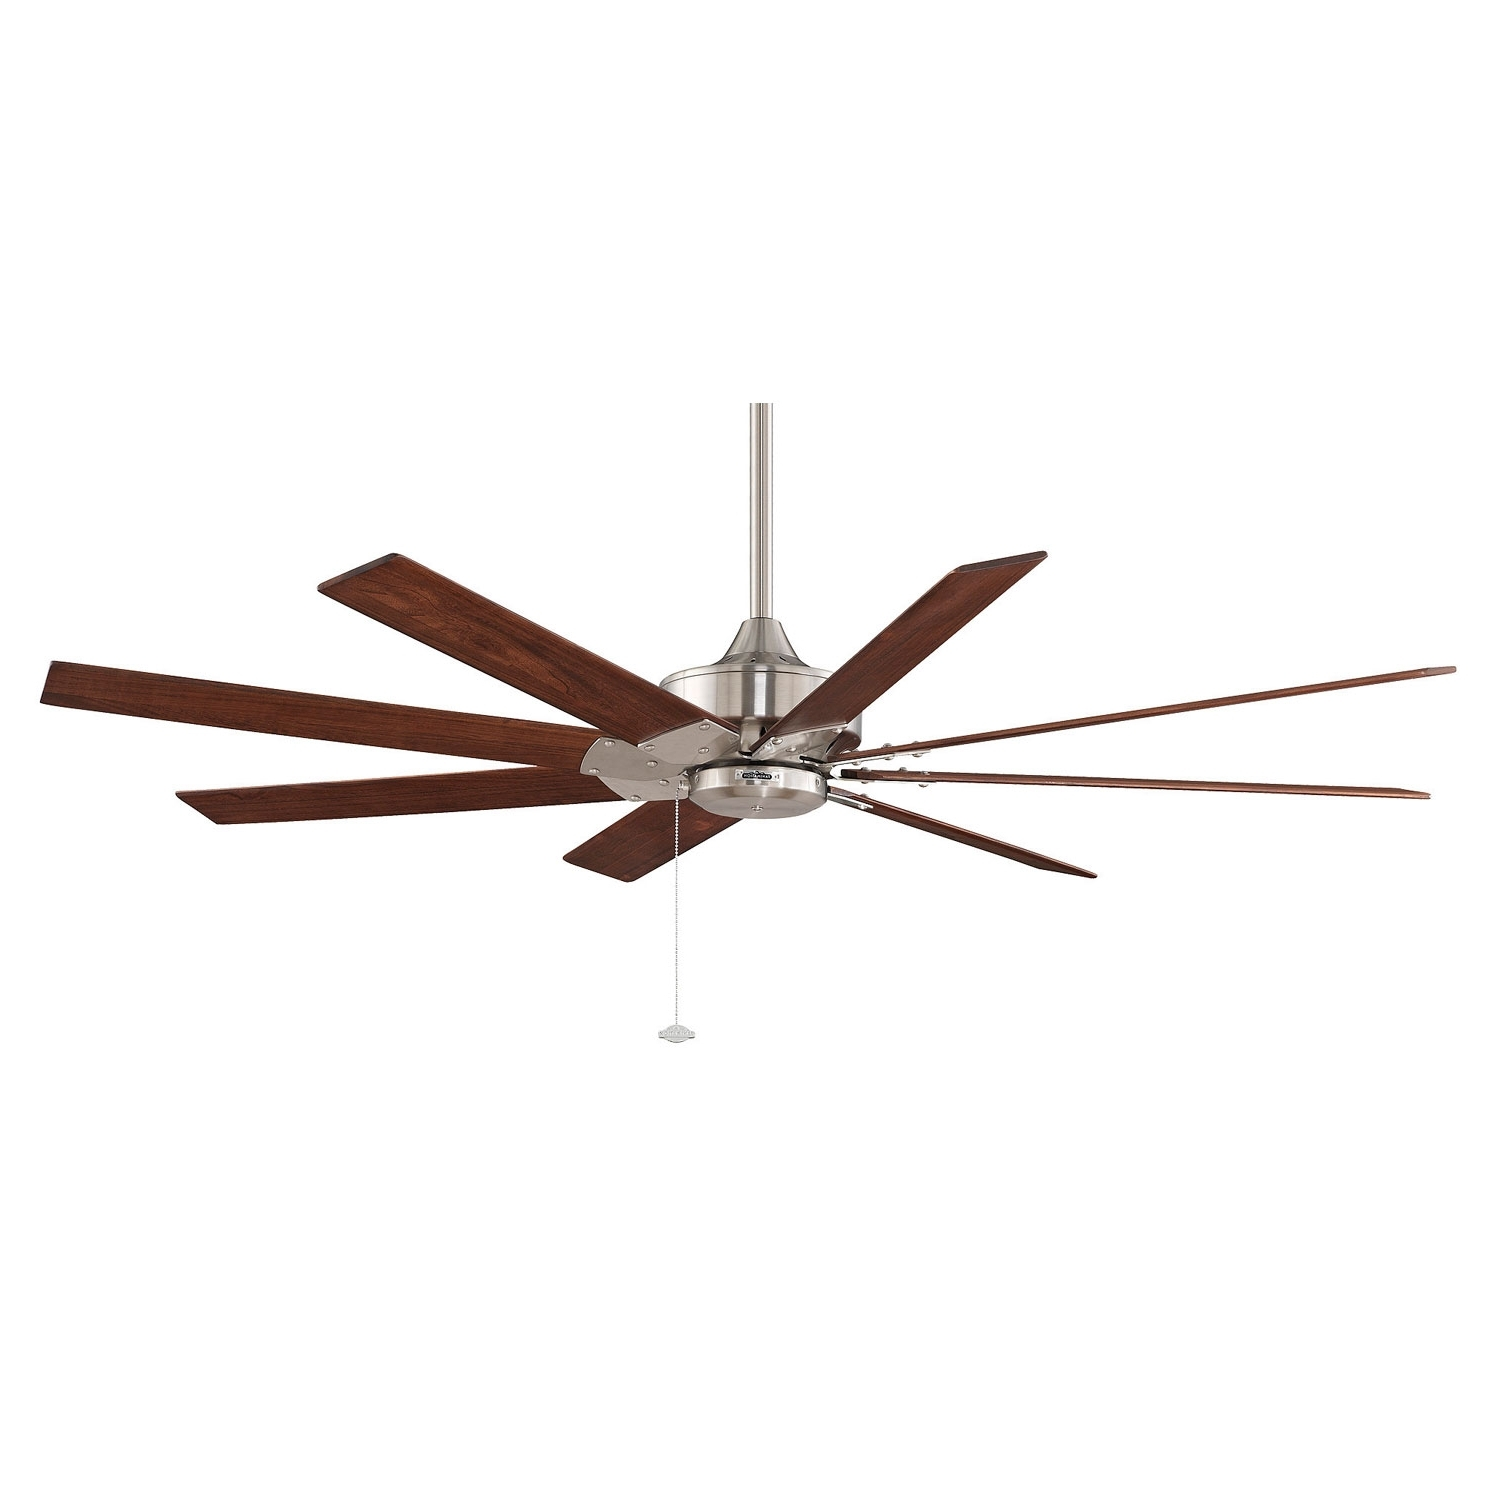 Preferred Fanimation Levon Brushed Nickel 63 Inch Energy Star Ceiling Fan With With Outdoor Ceiling Fans With Aluminum Blades (View 13 of 20)